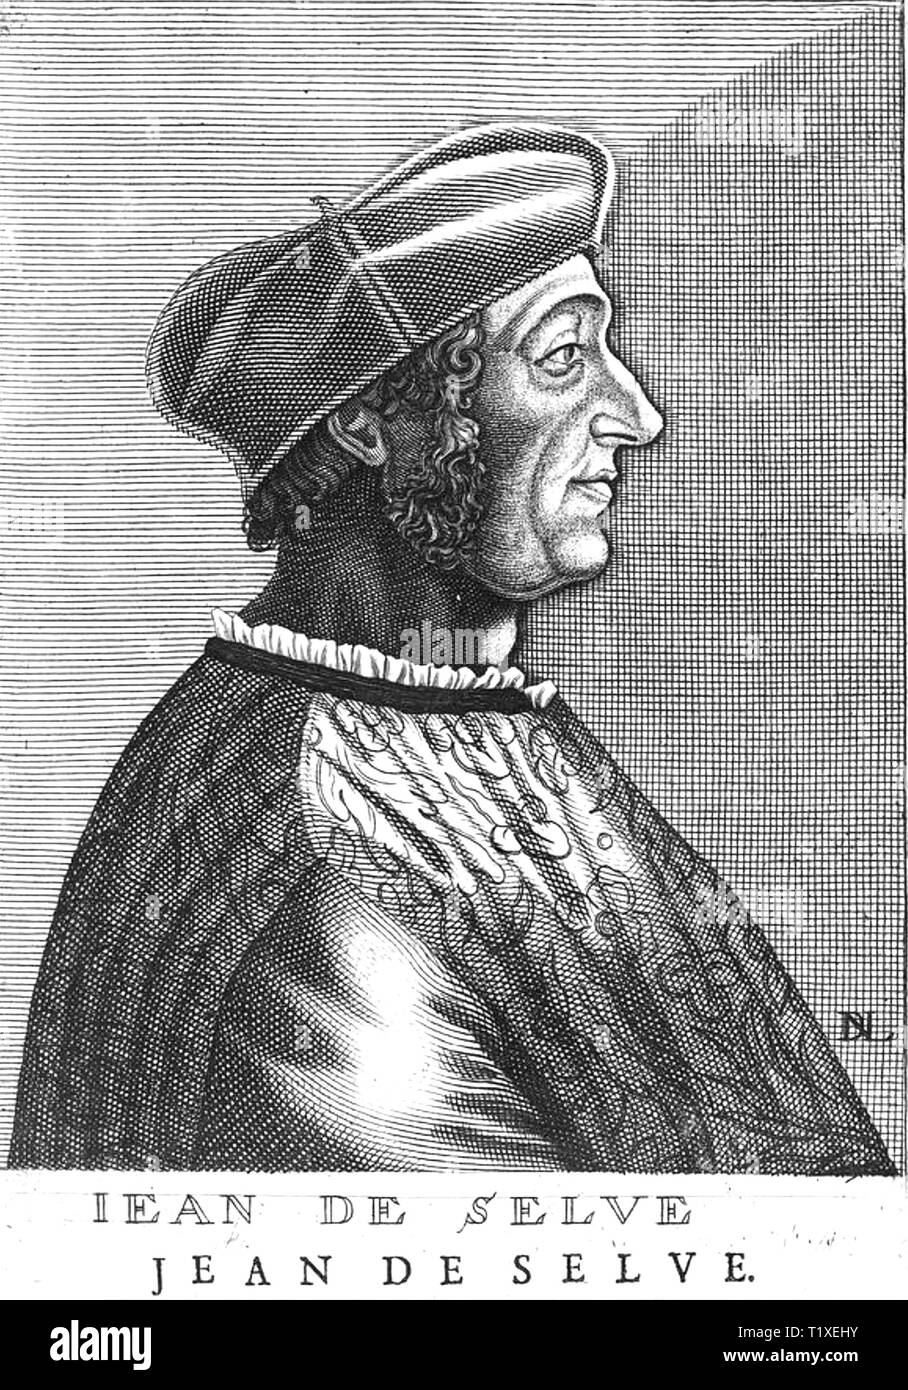 JEAN de SELVE  (1465-1529) French scholar and diplomat - Stock Image